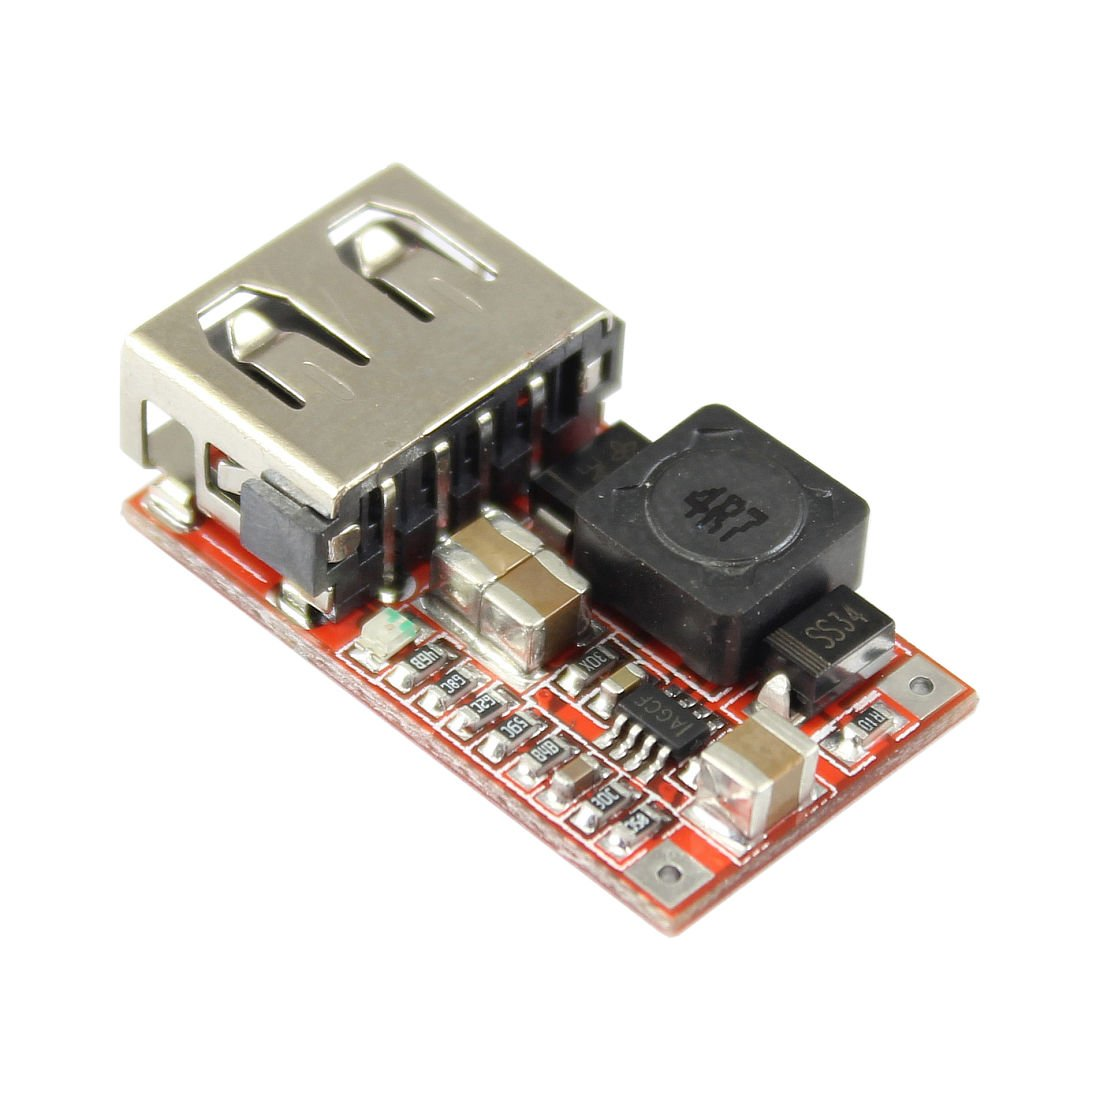 Absolute Native Electronics Ailavi Dc Buck Converter Sale 12vdc To 5vdc Circuit